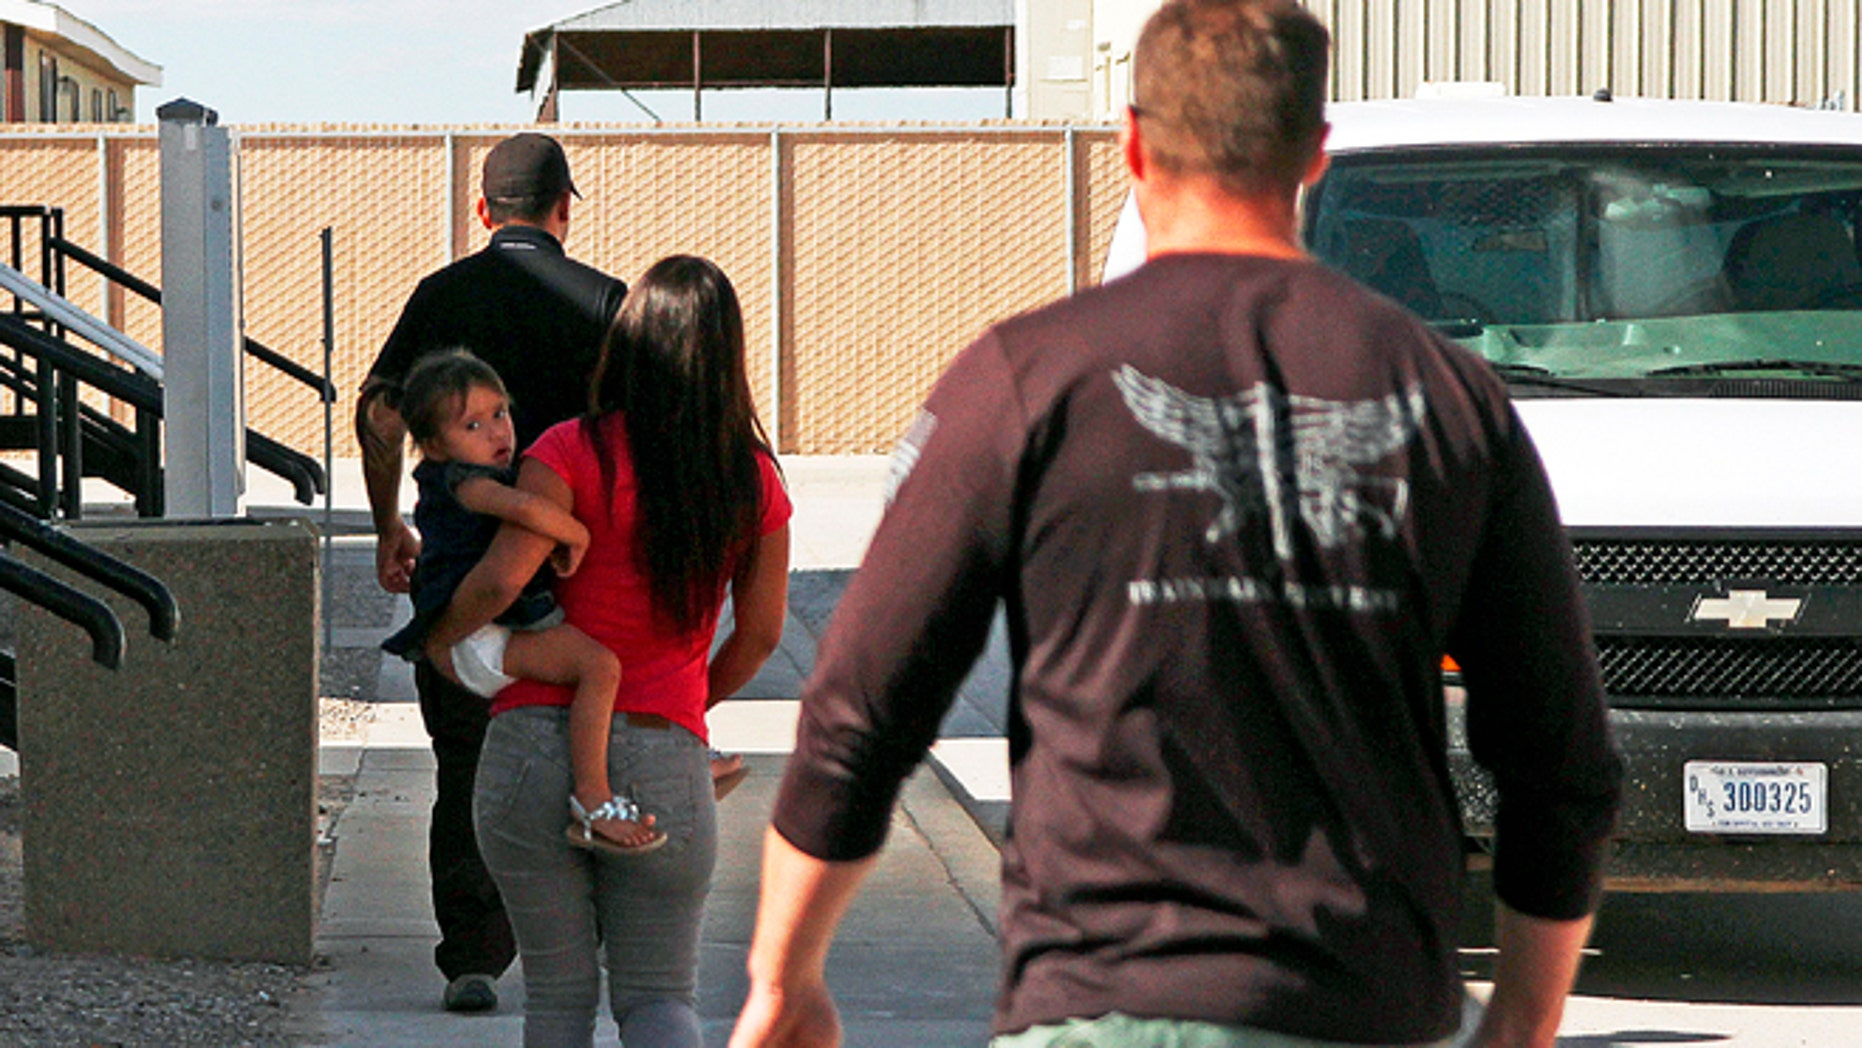 A woman and child are escorted to a van by detention facility guards inside the Artesia Family Residential Center, a federal detention facility for illegal immigrants and children in Artesia, N.M. (AP Photo/Juan Carlos Llorca, File)